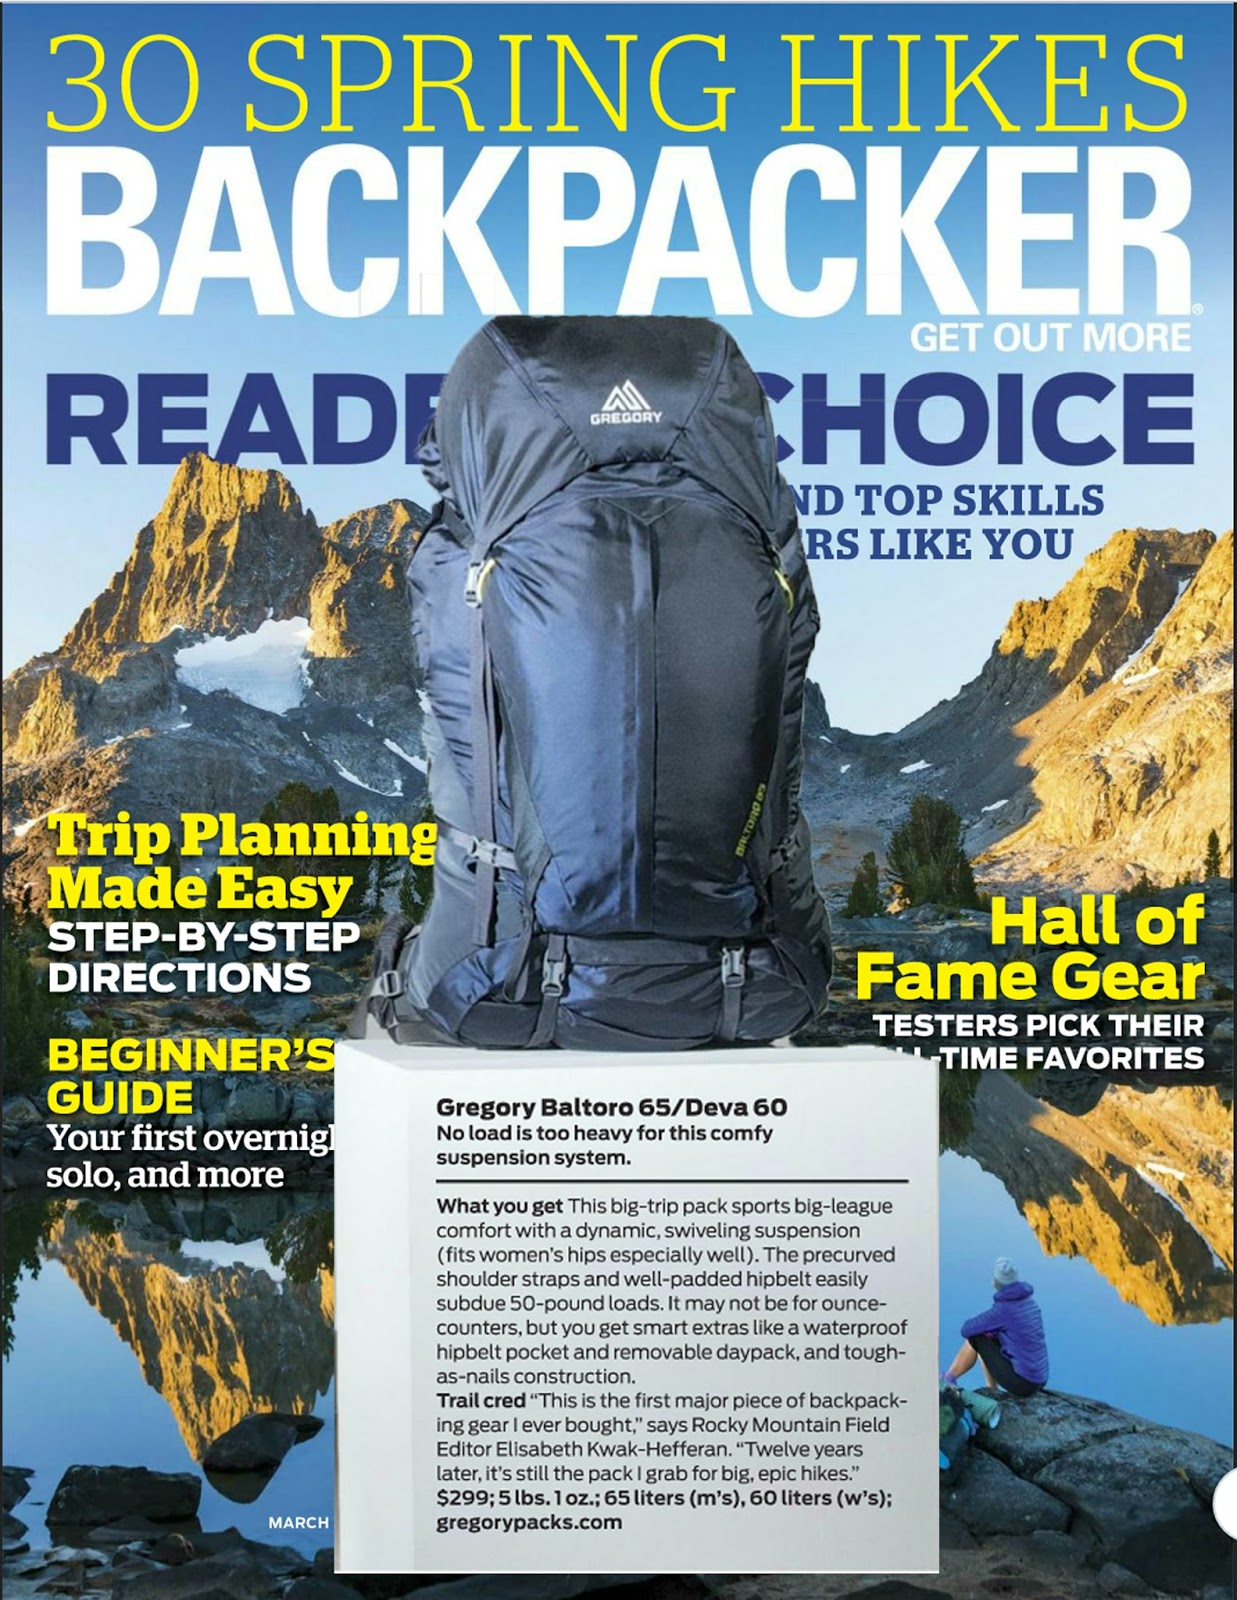 51fe11638 Backpacker magazine featured the Baltoro 65 in their March issue, naming it  in their roundup of